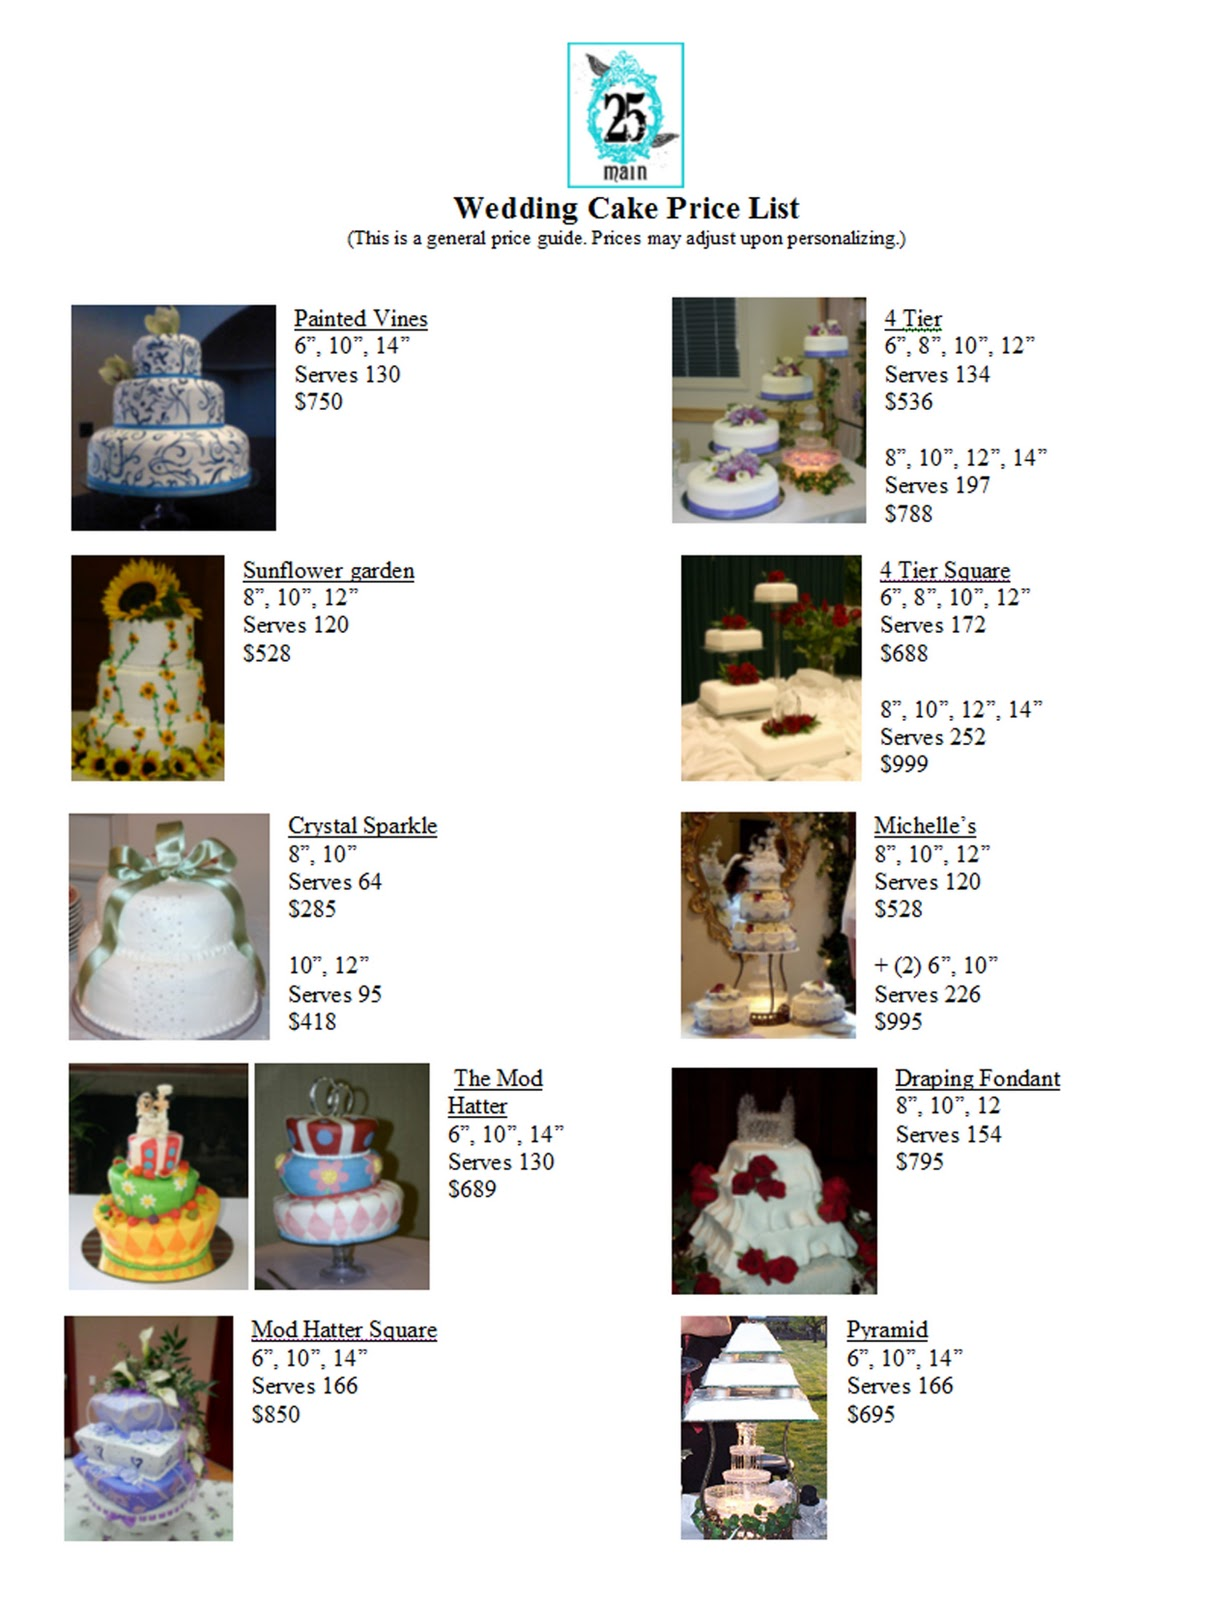 Modern wedding cakes for the holiday: Wedding cake prices 2015